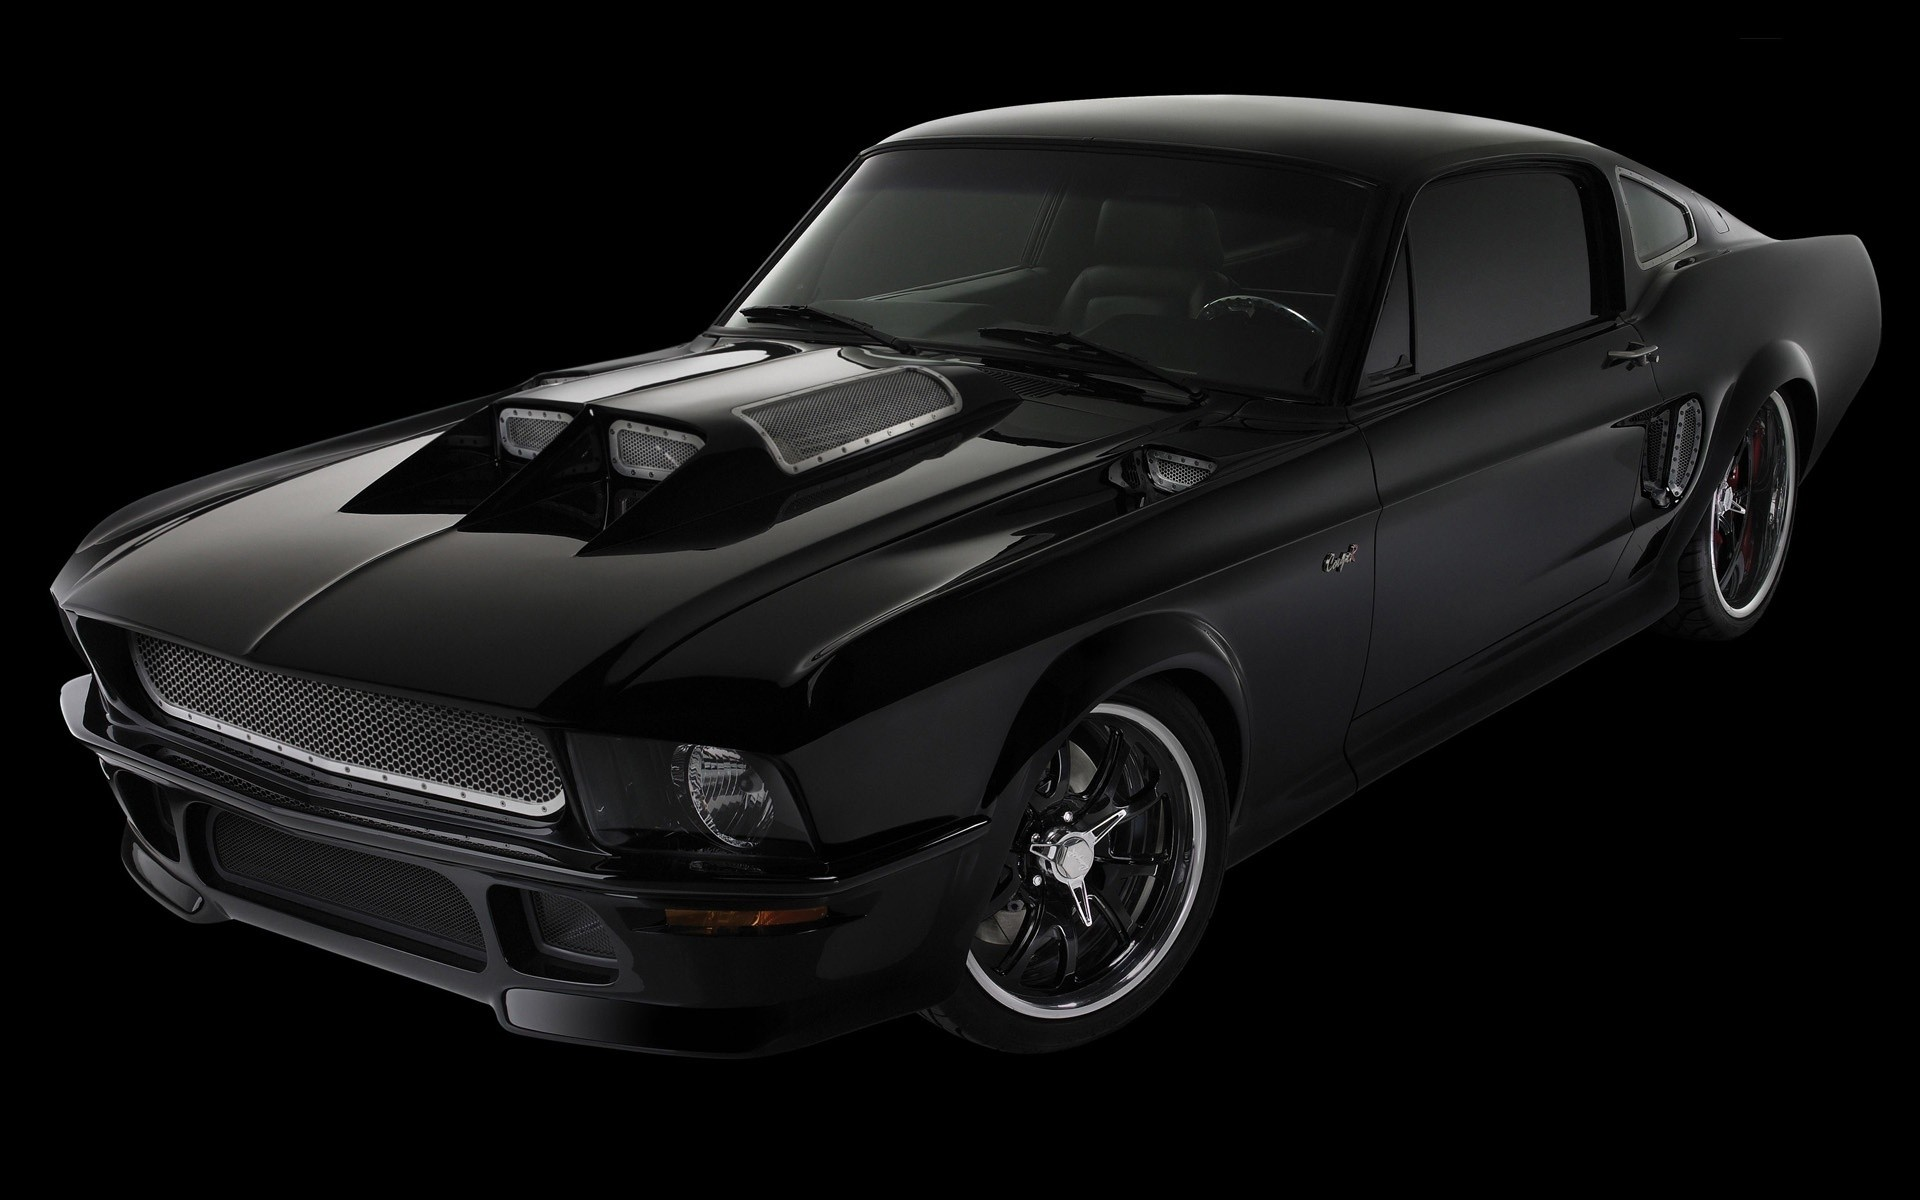 Ford Mustang Obsidian 2008